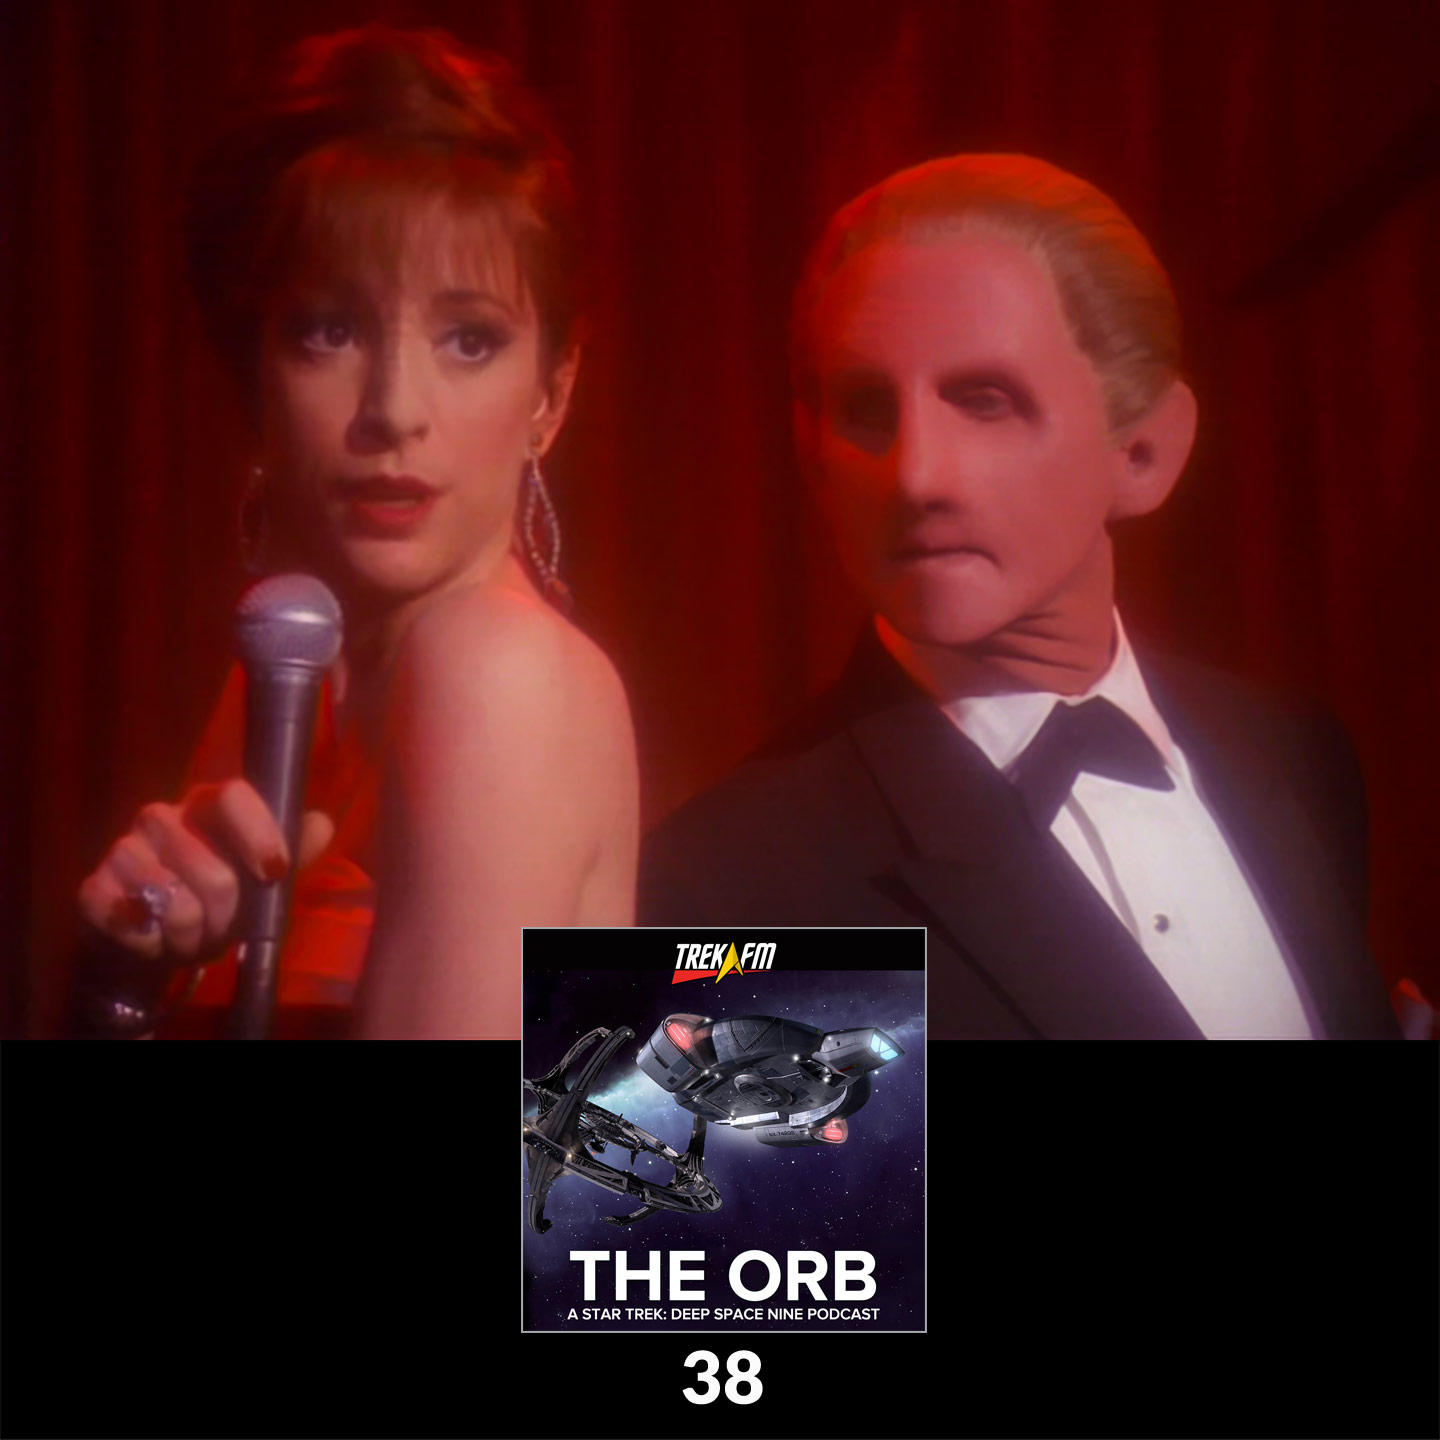 The Orb 38: A Nanook of the North Thing